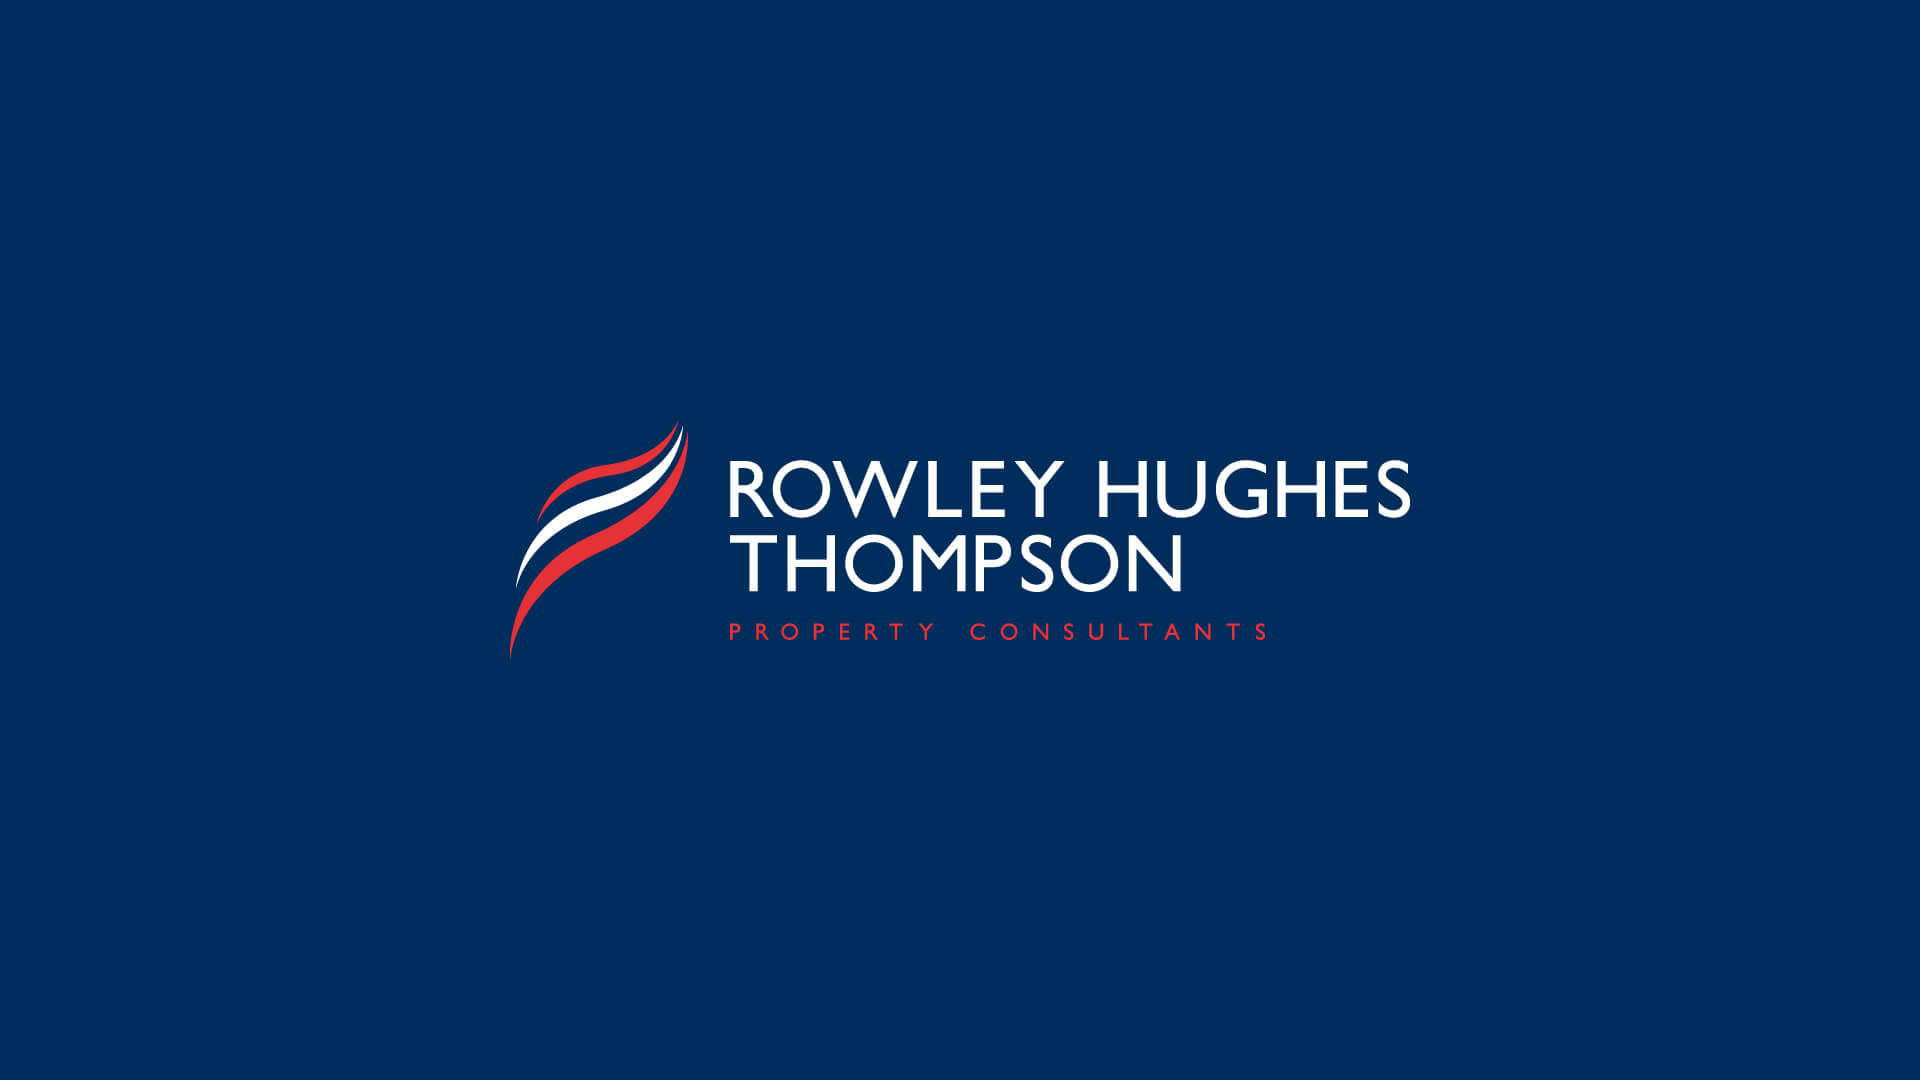 Rowley Hughes Thompson Brand